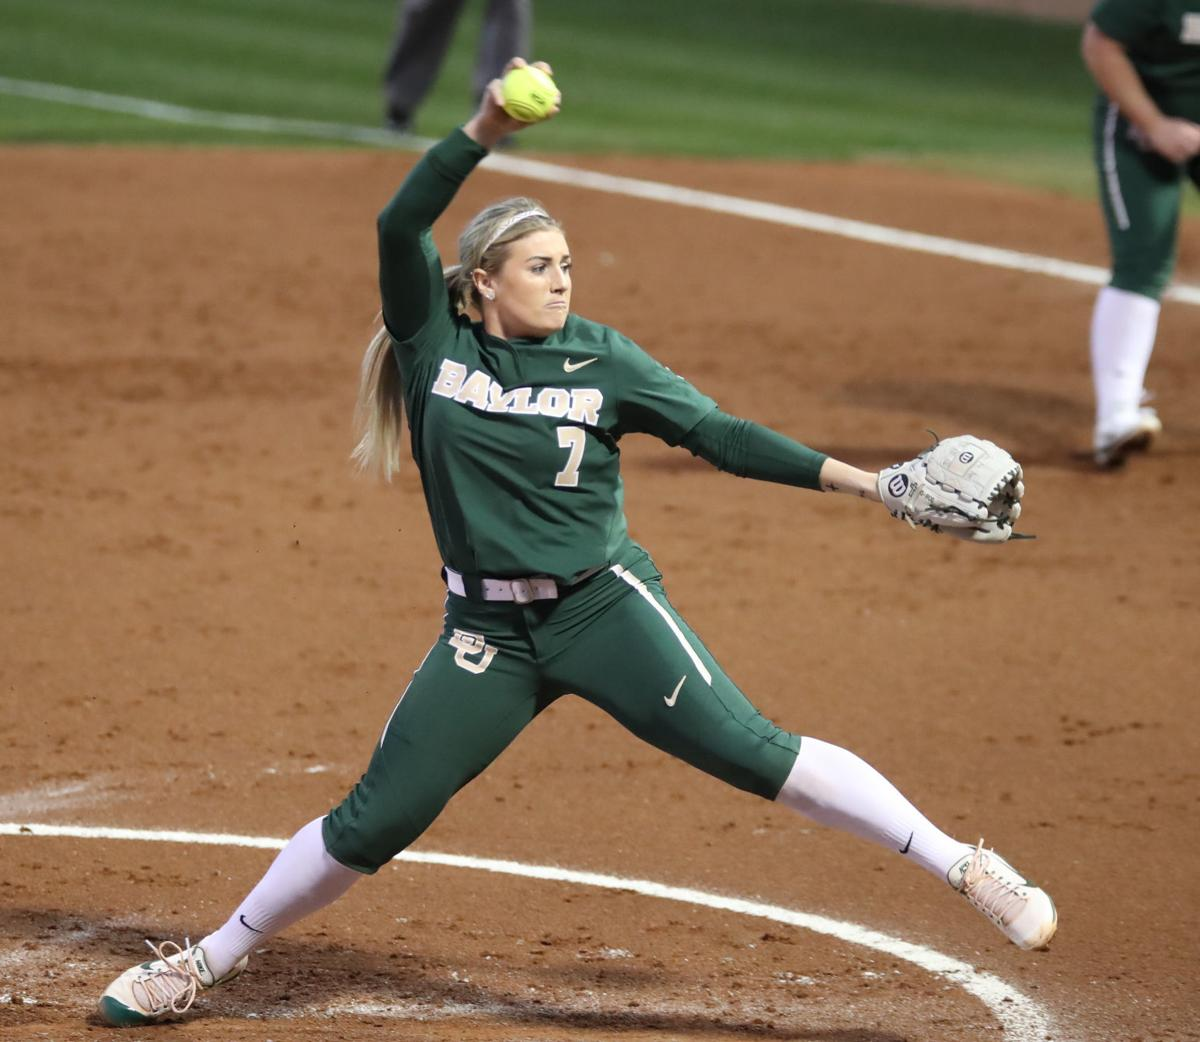 dc8c83eefb93 Rodoni s third no-hitter leads Baylor s 8-0 win